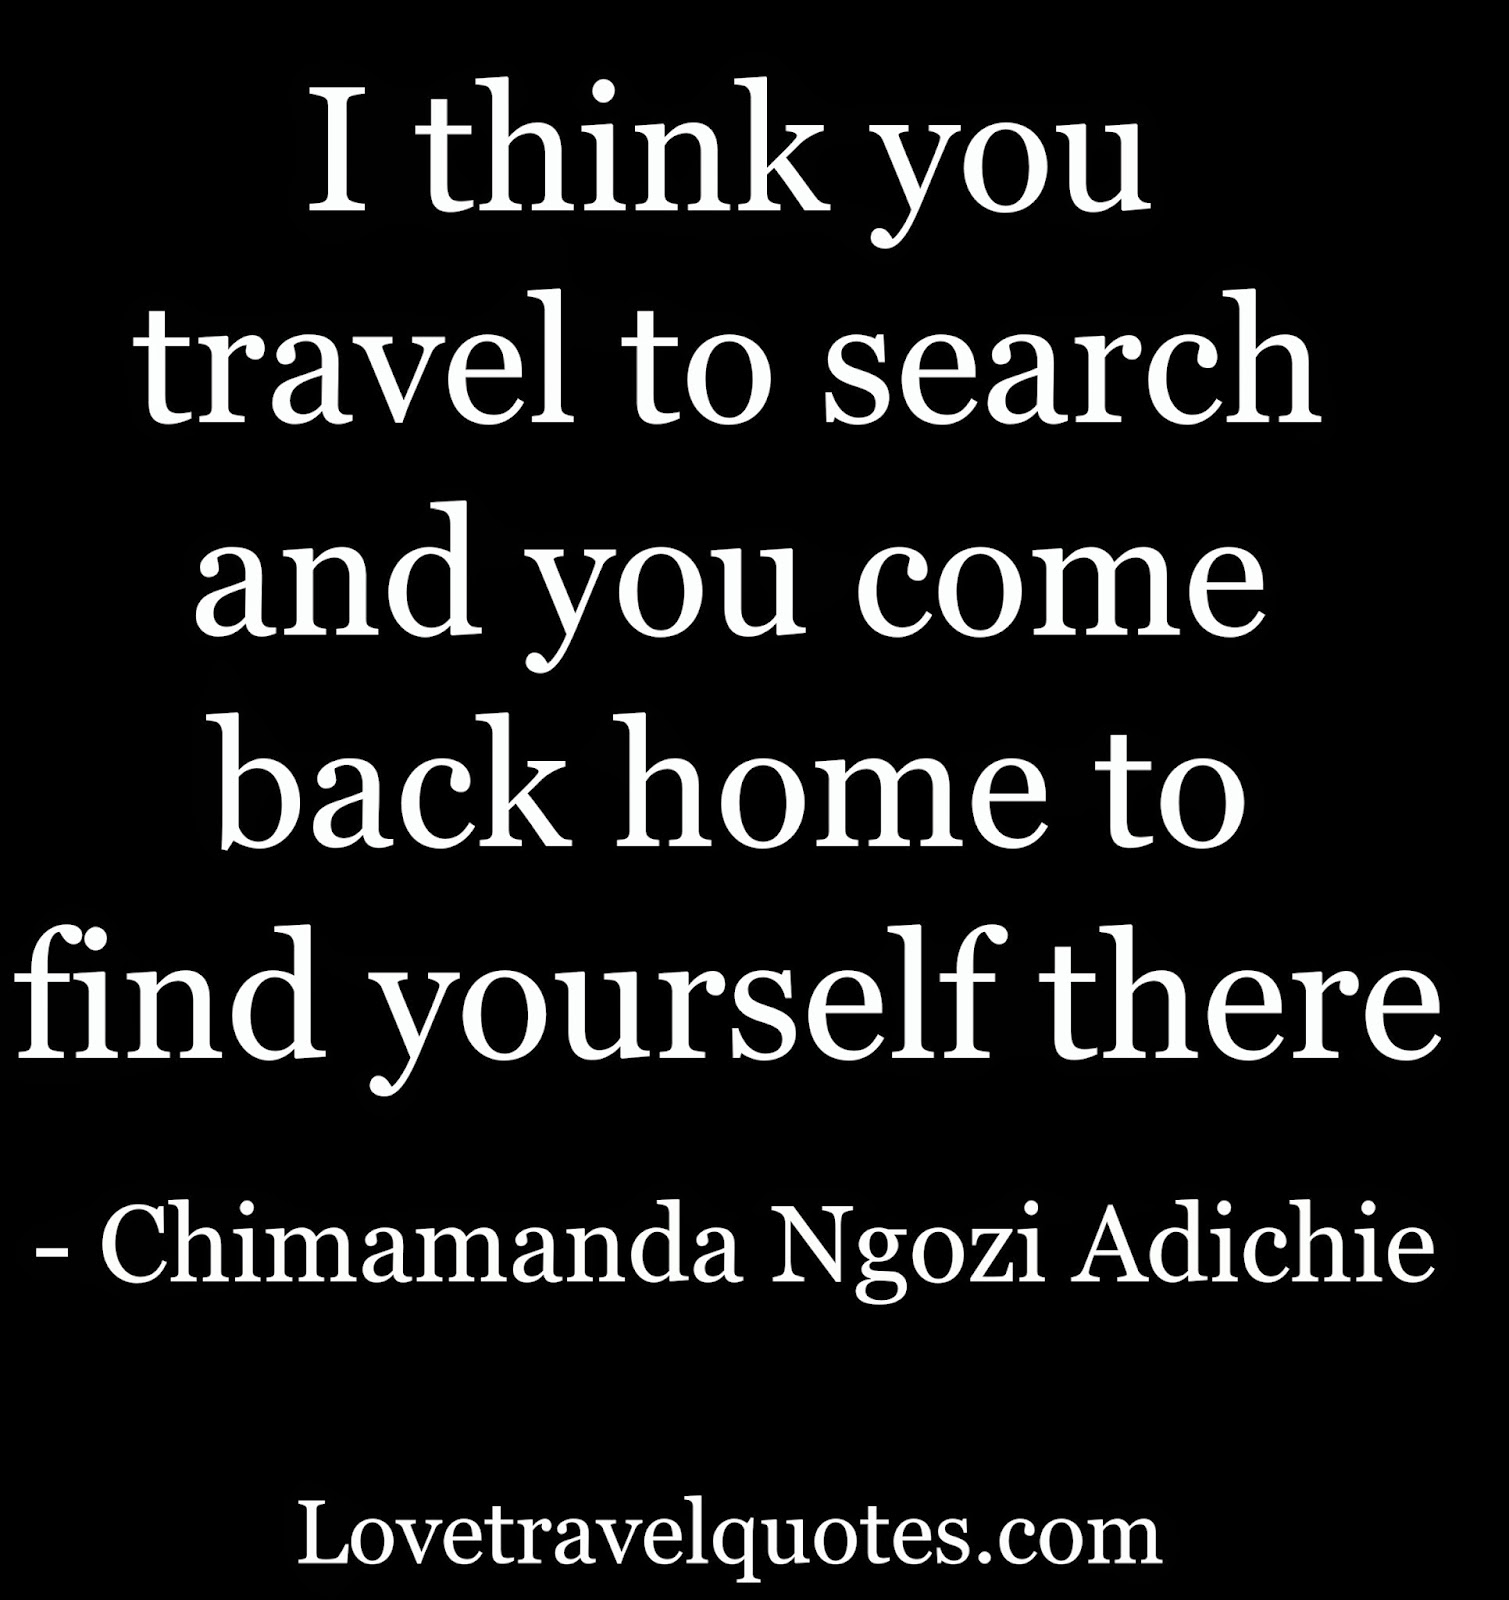 I think you travel to search and you come back home to find yourself there